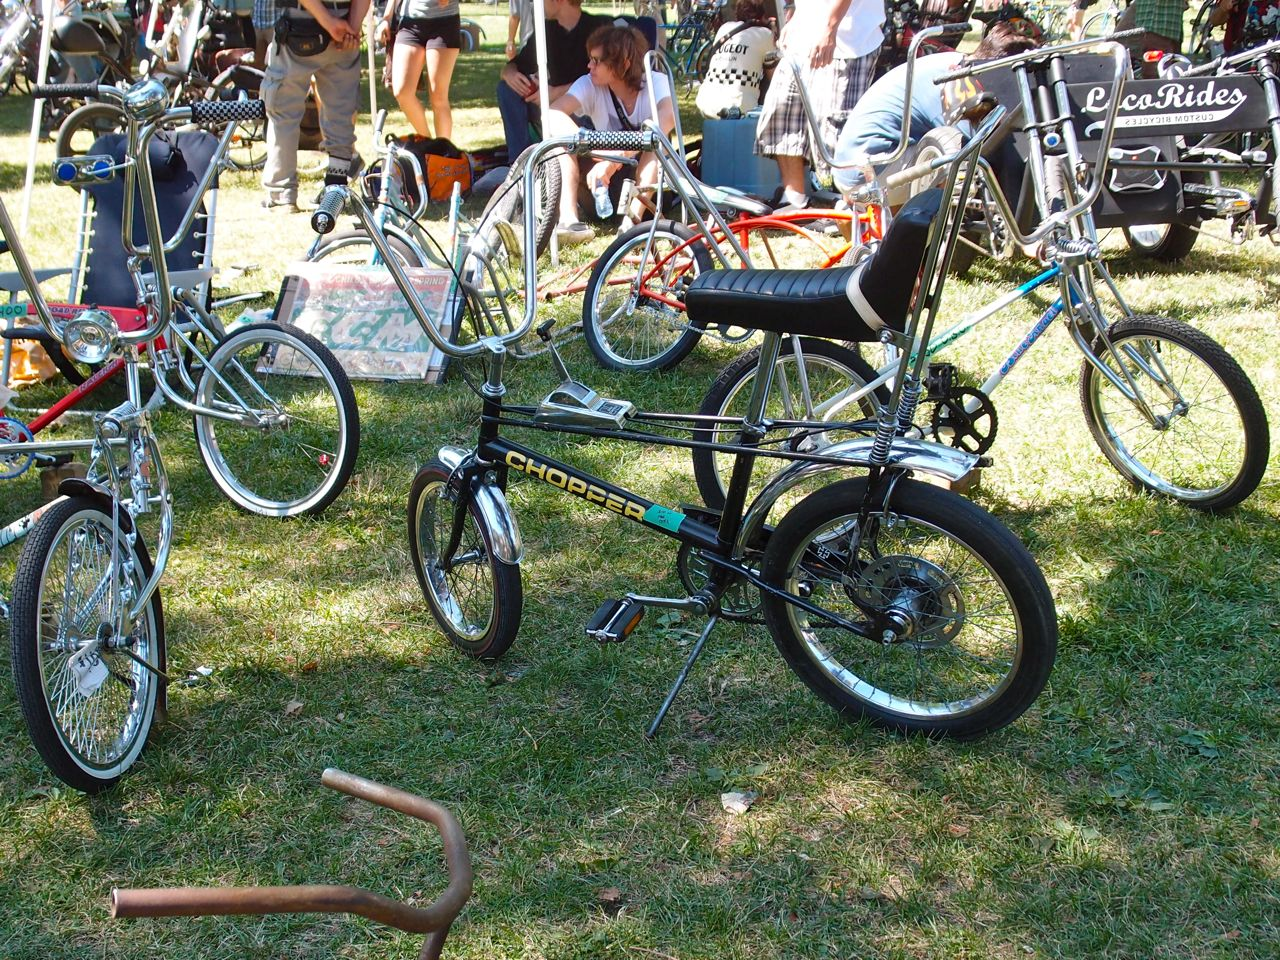 Toronto Vintage Bike Show | Biking in a Big City